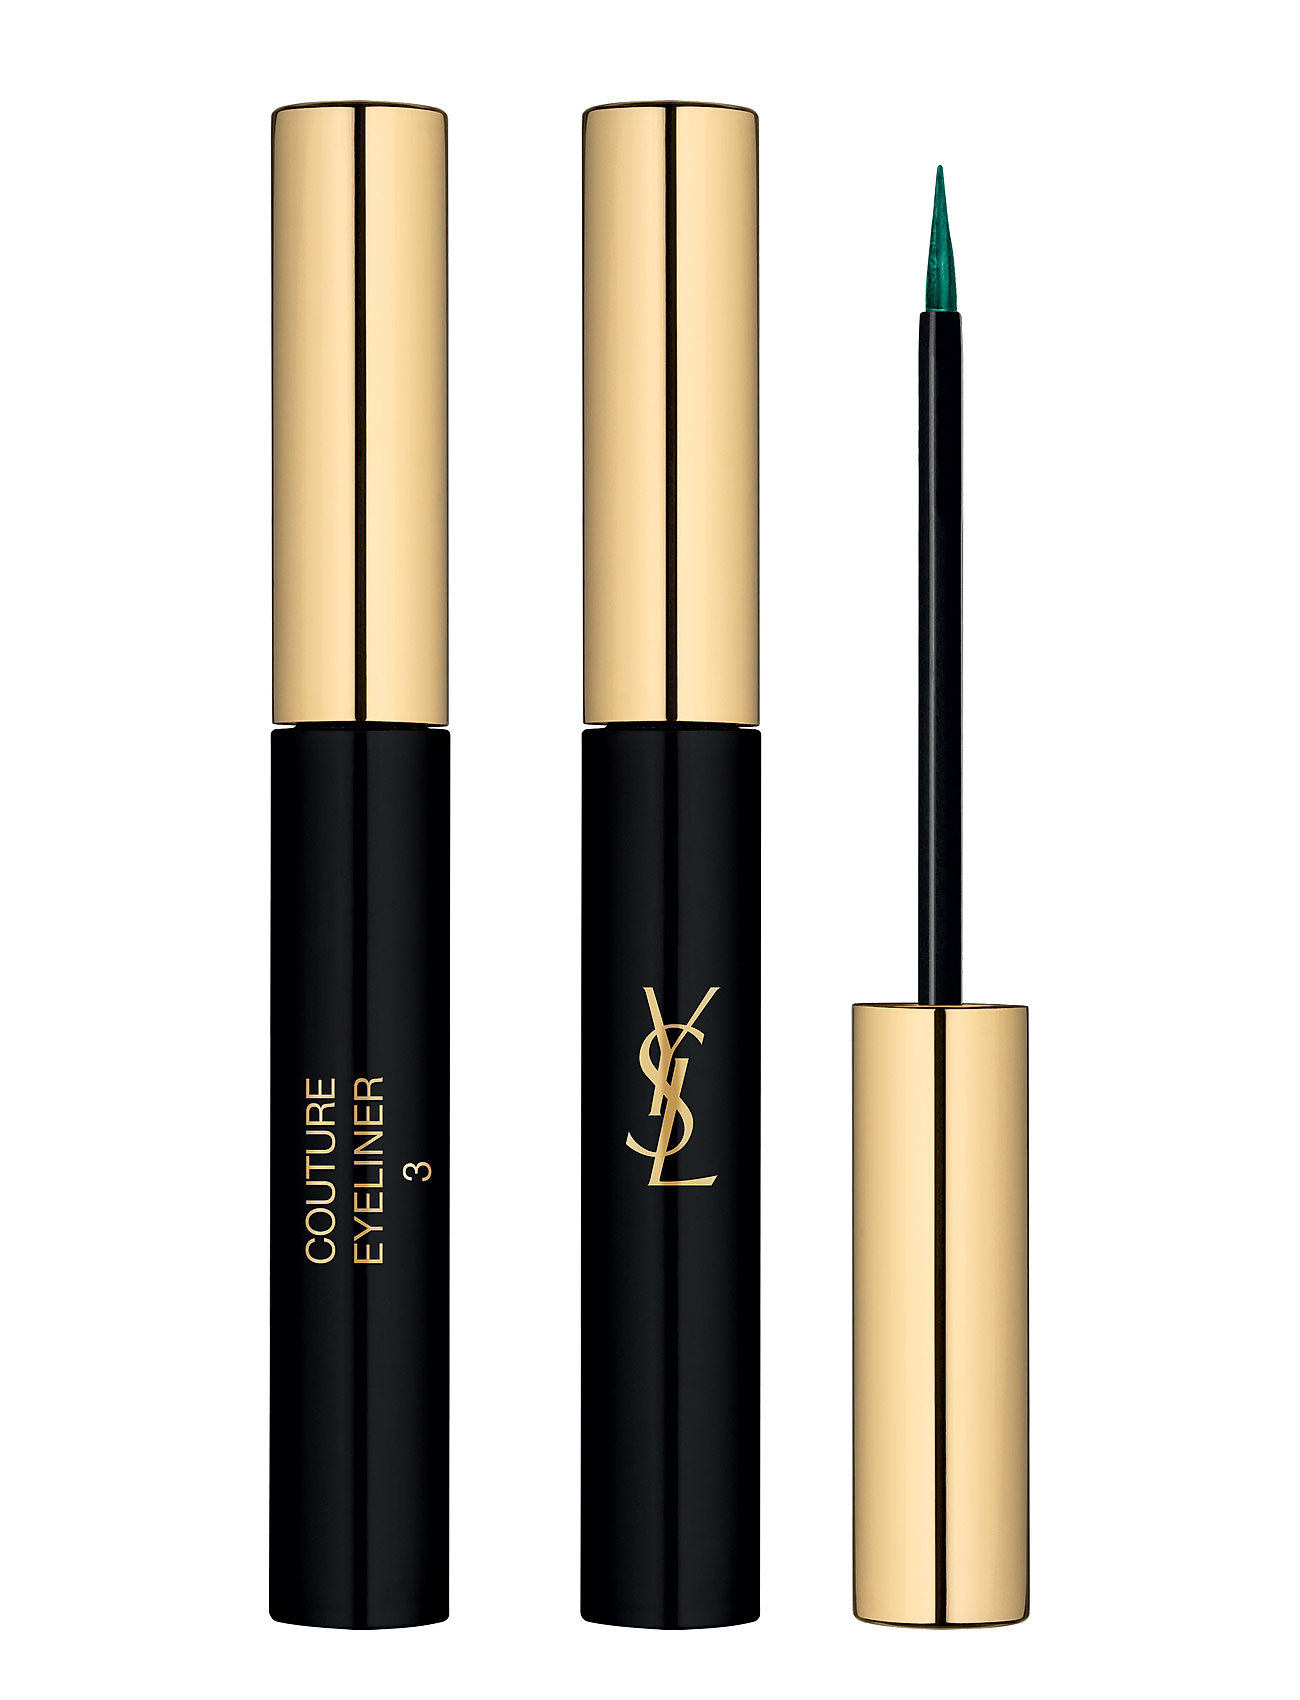 yves saint laurent Couture eye liner 8 bronze på boozt.com dk